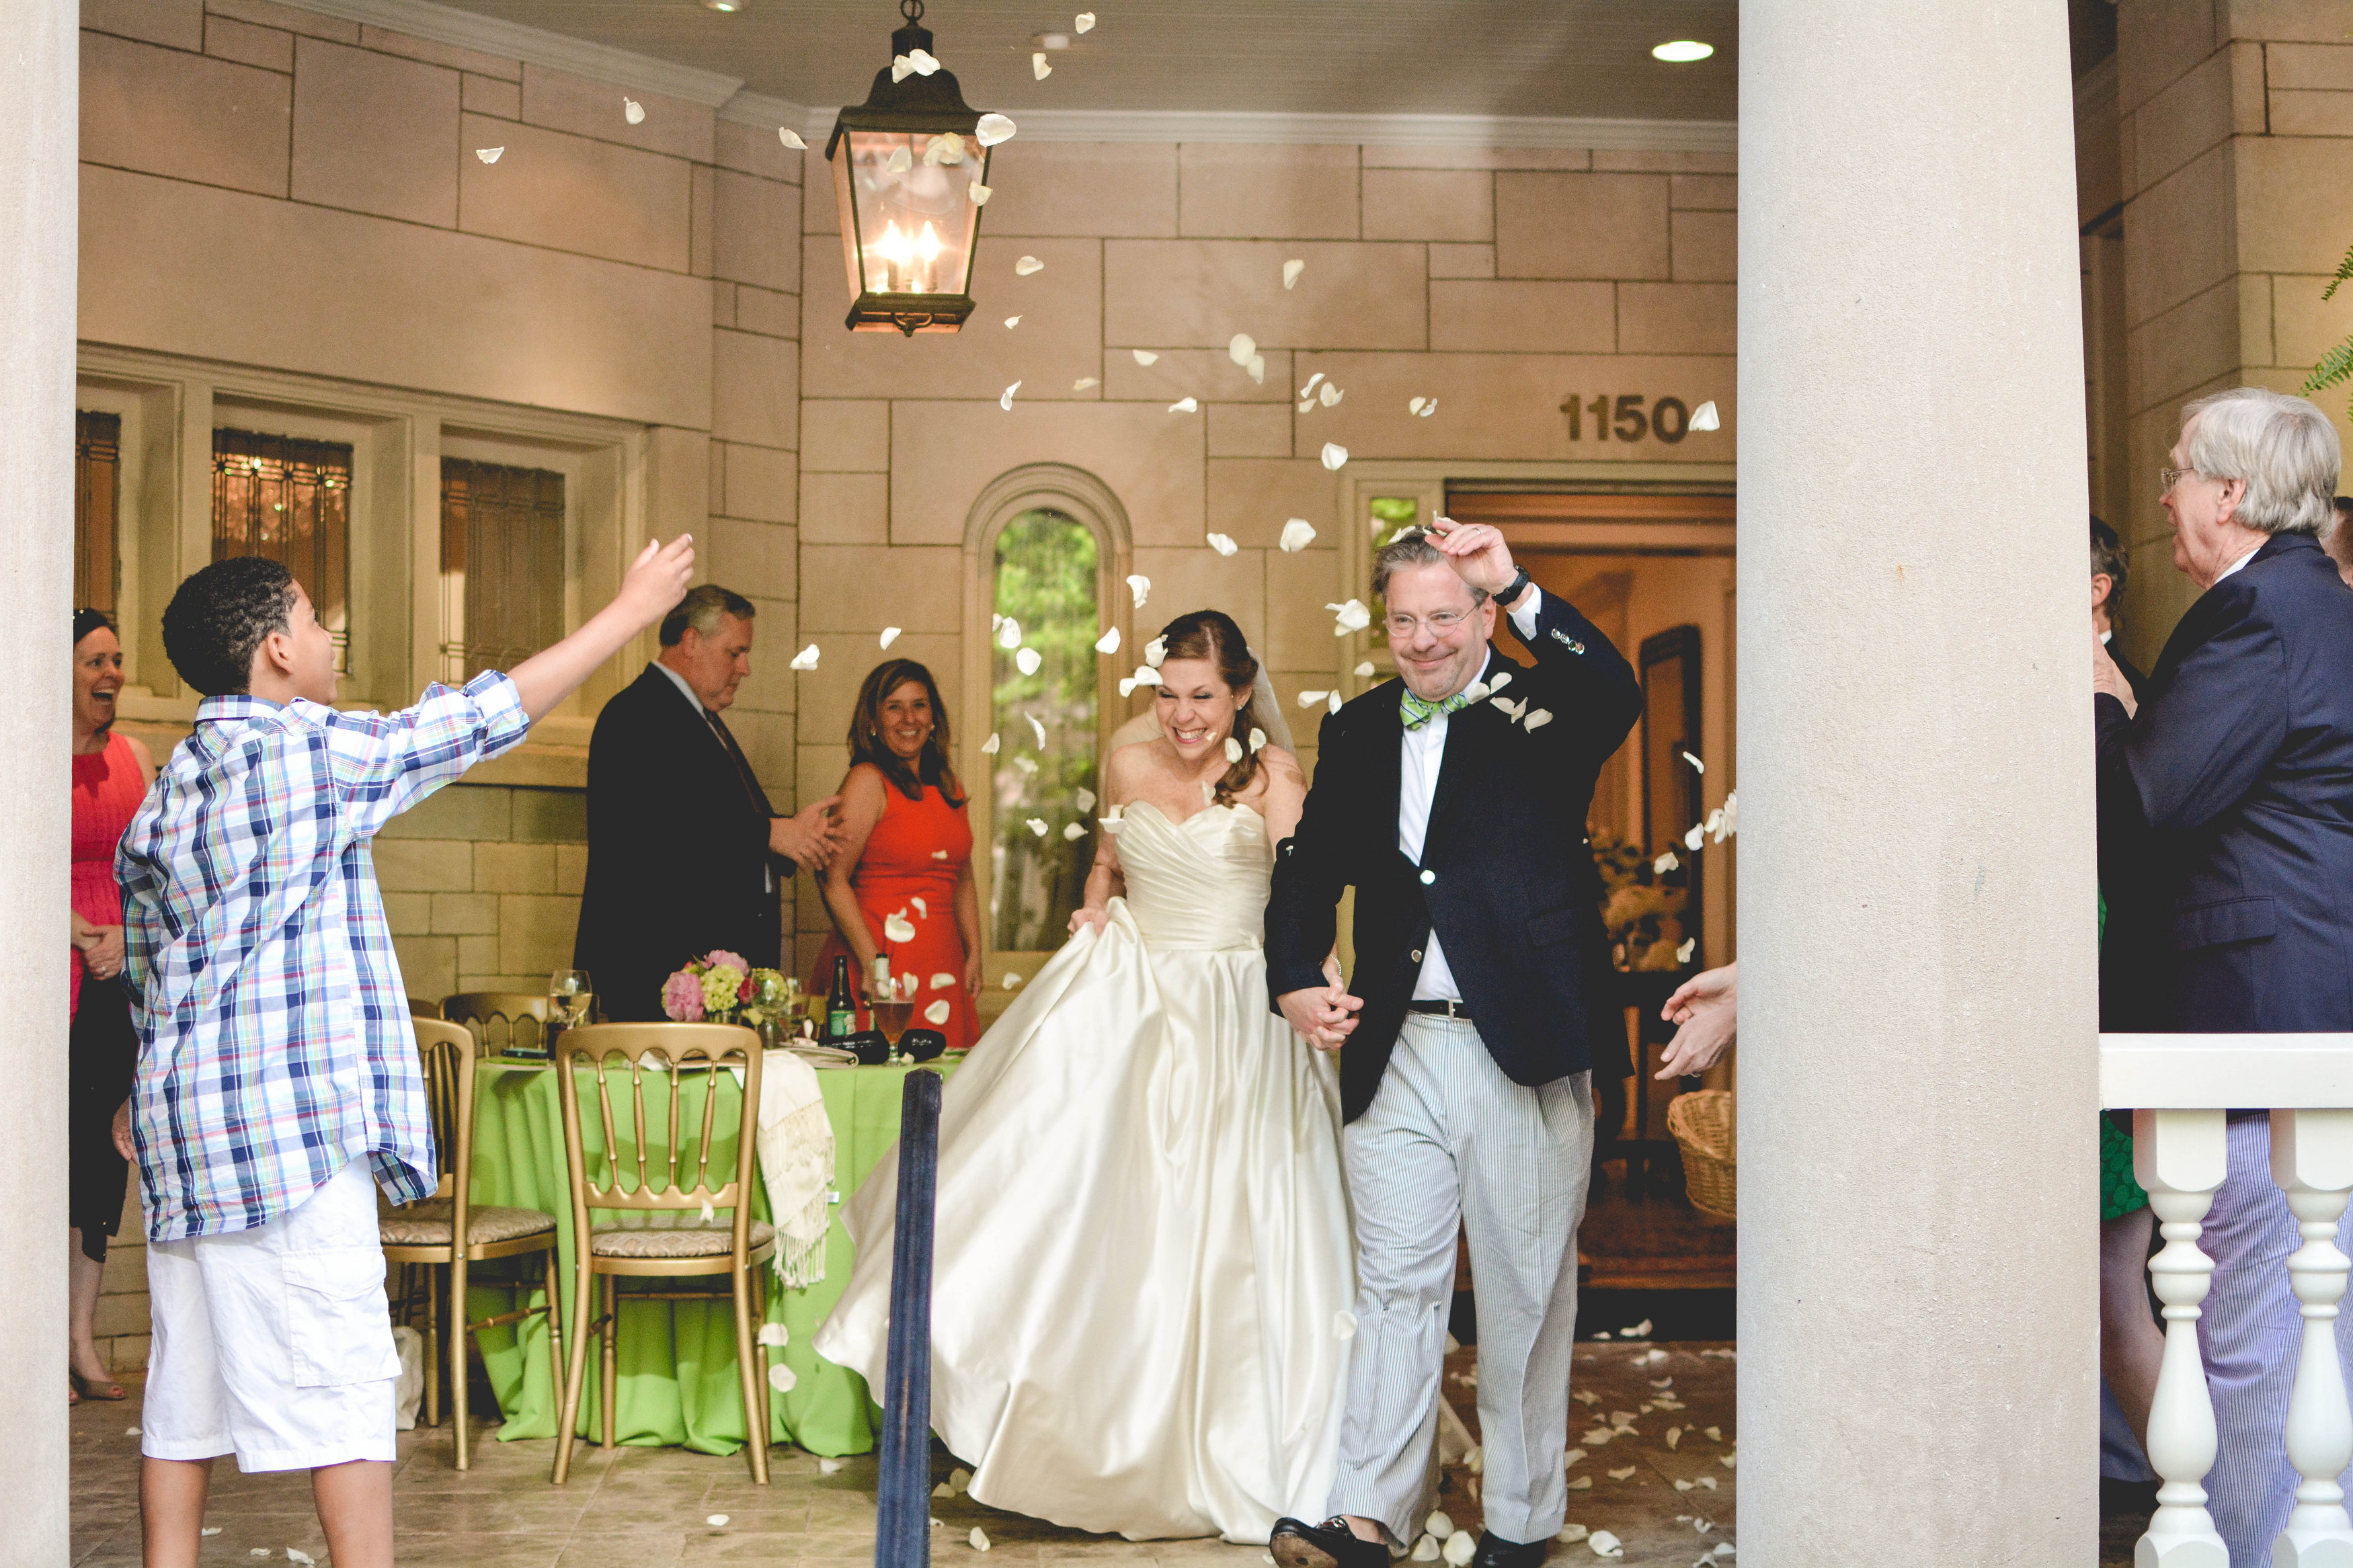 Atlanta wedding bride and groom exit with flower petals